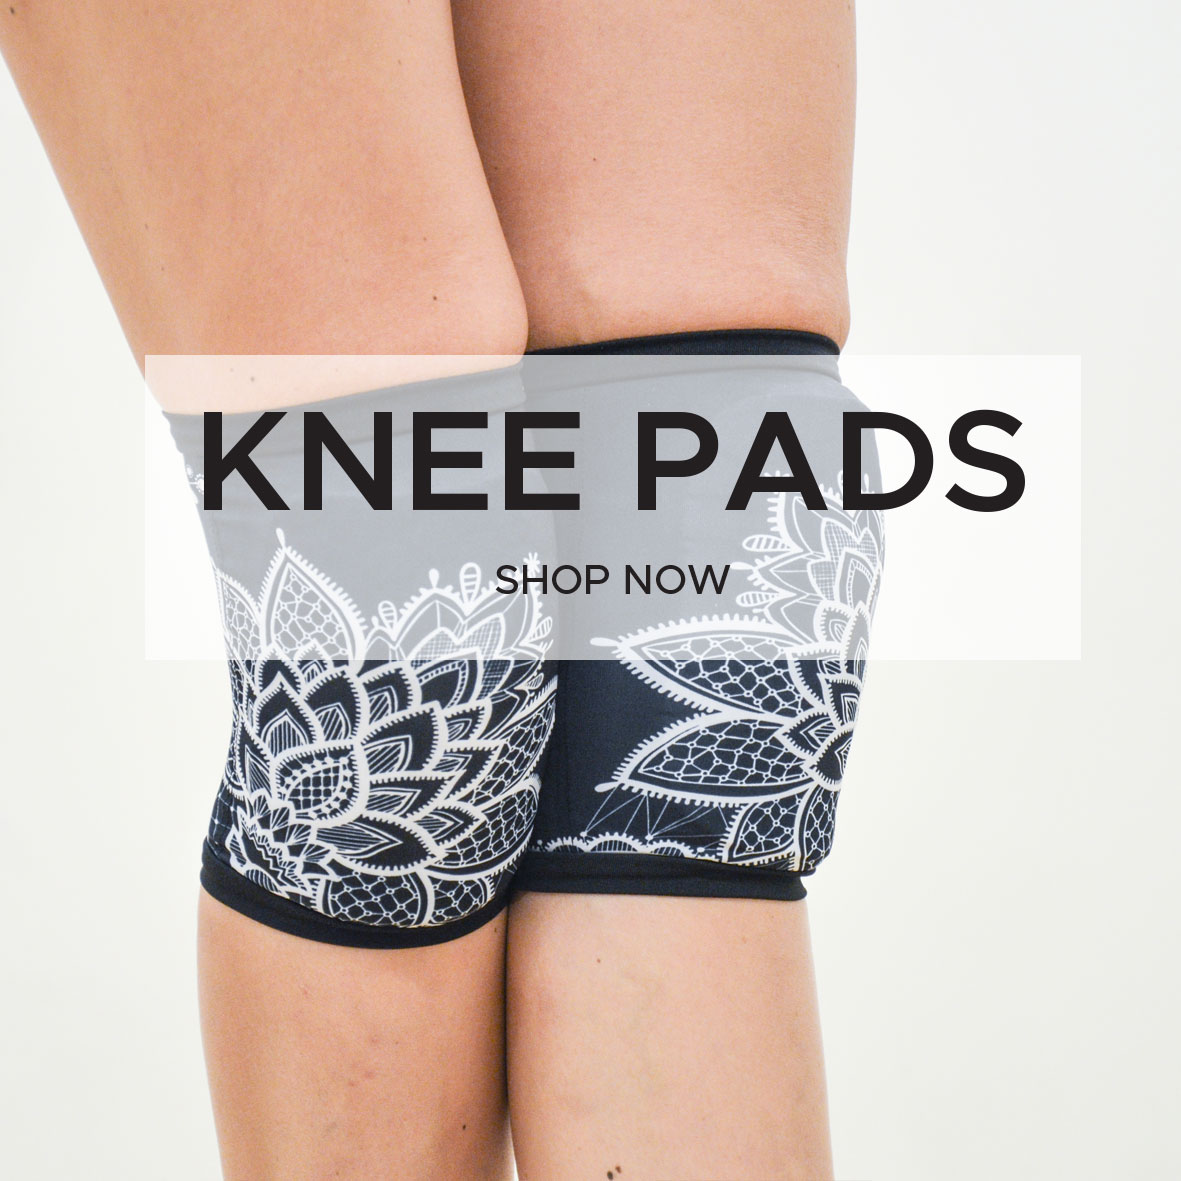 boomkats pole dance clothes knee pads